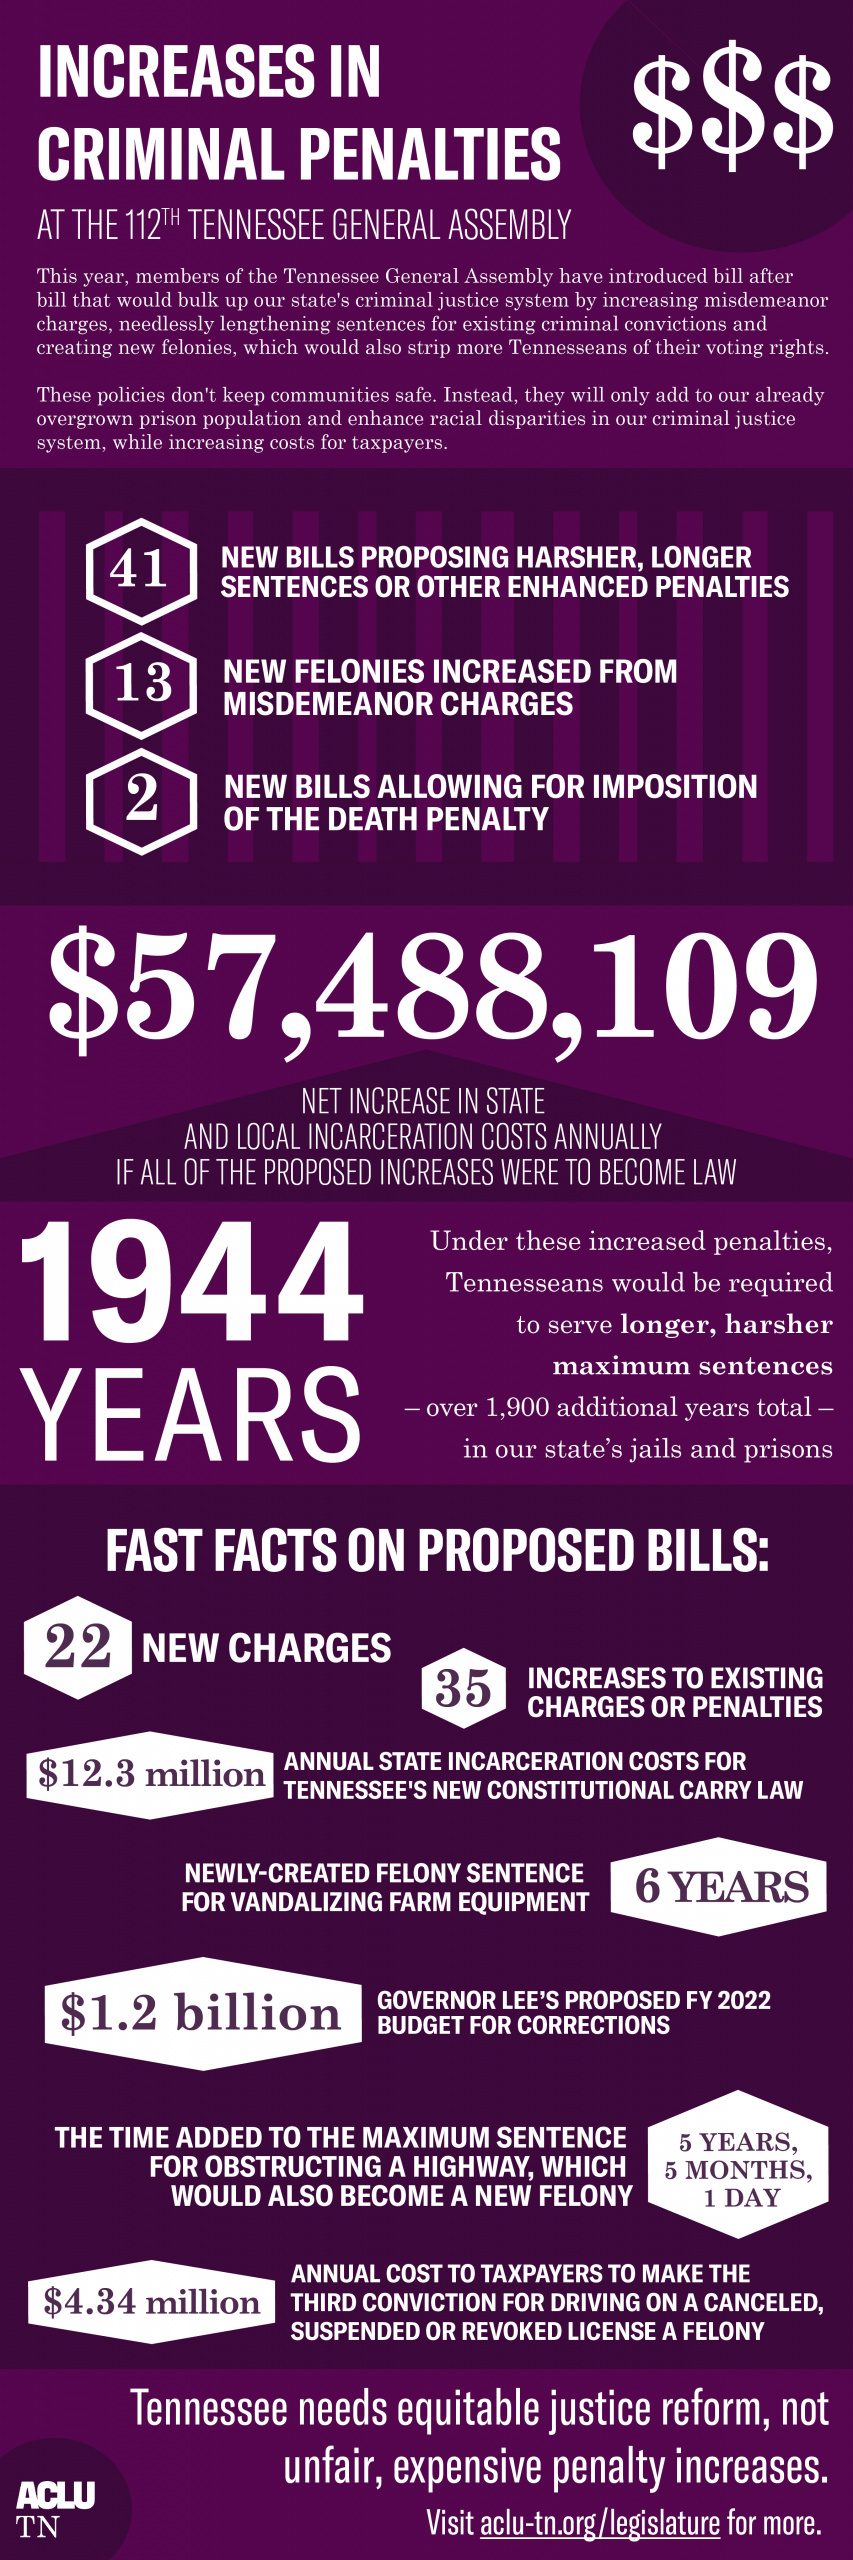 Increases in Criminal Penalties at the 112th TGA Infographic